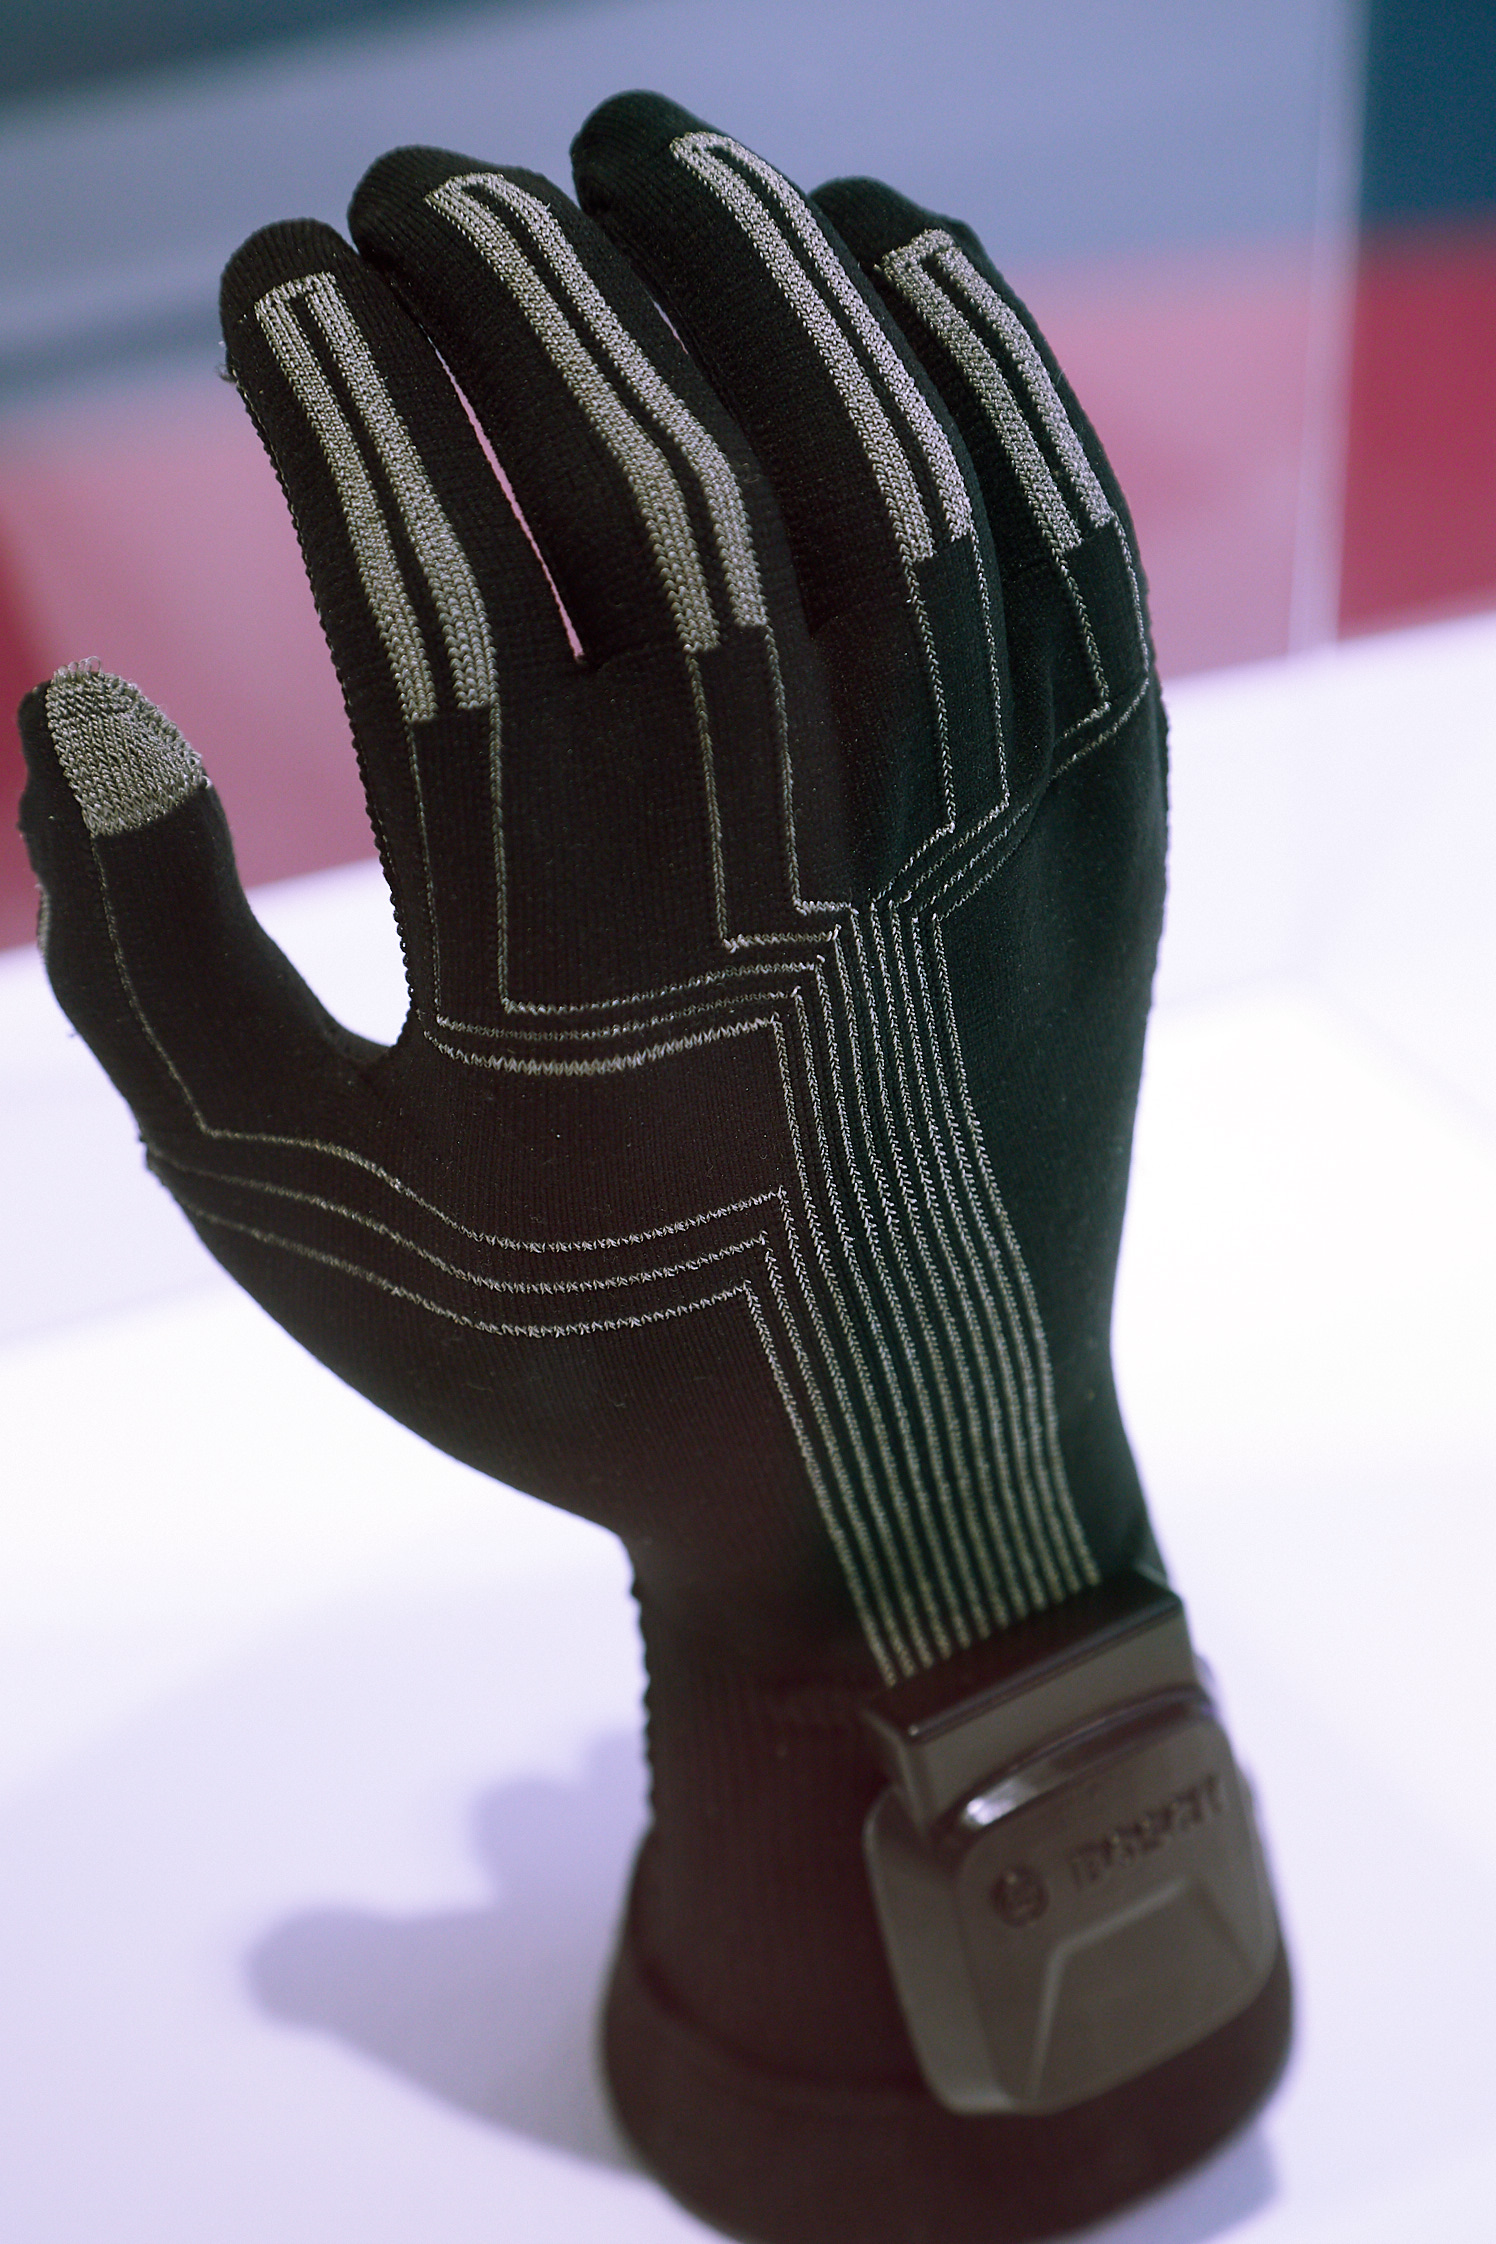 Techtextil Innovation Award Areal: Knitted Sensor Glove